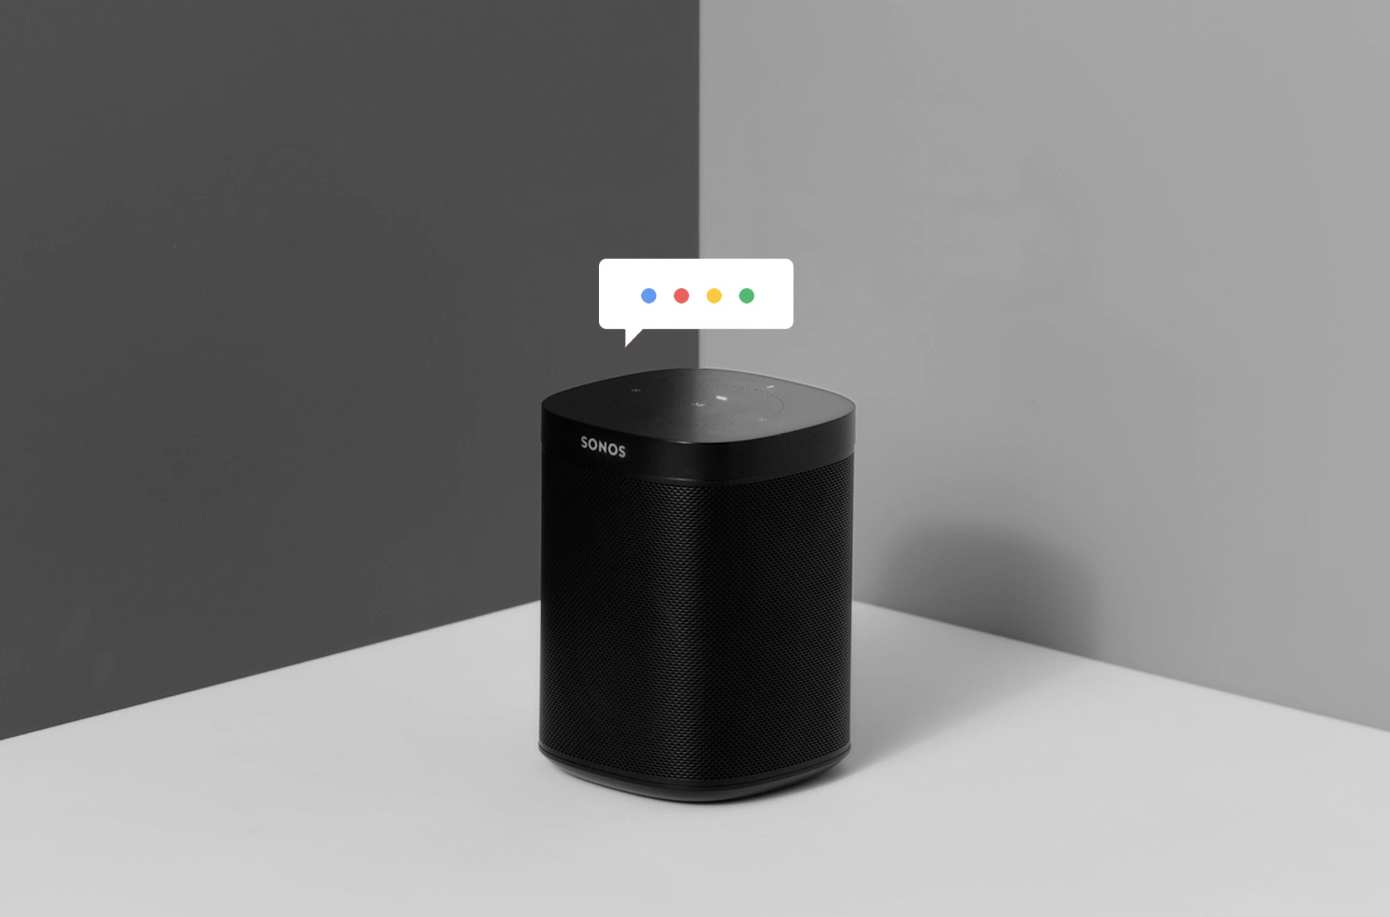 Google Assistant Sonos One